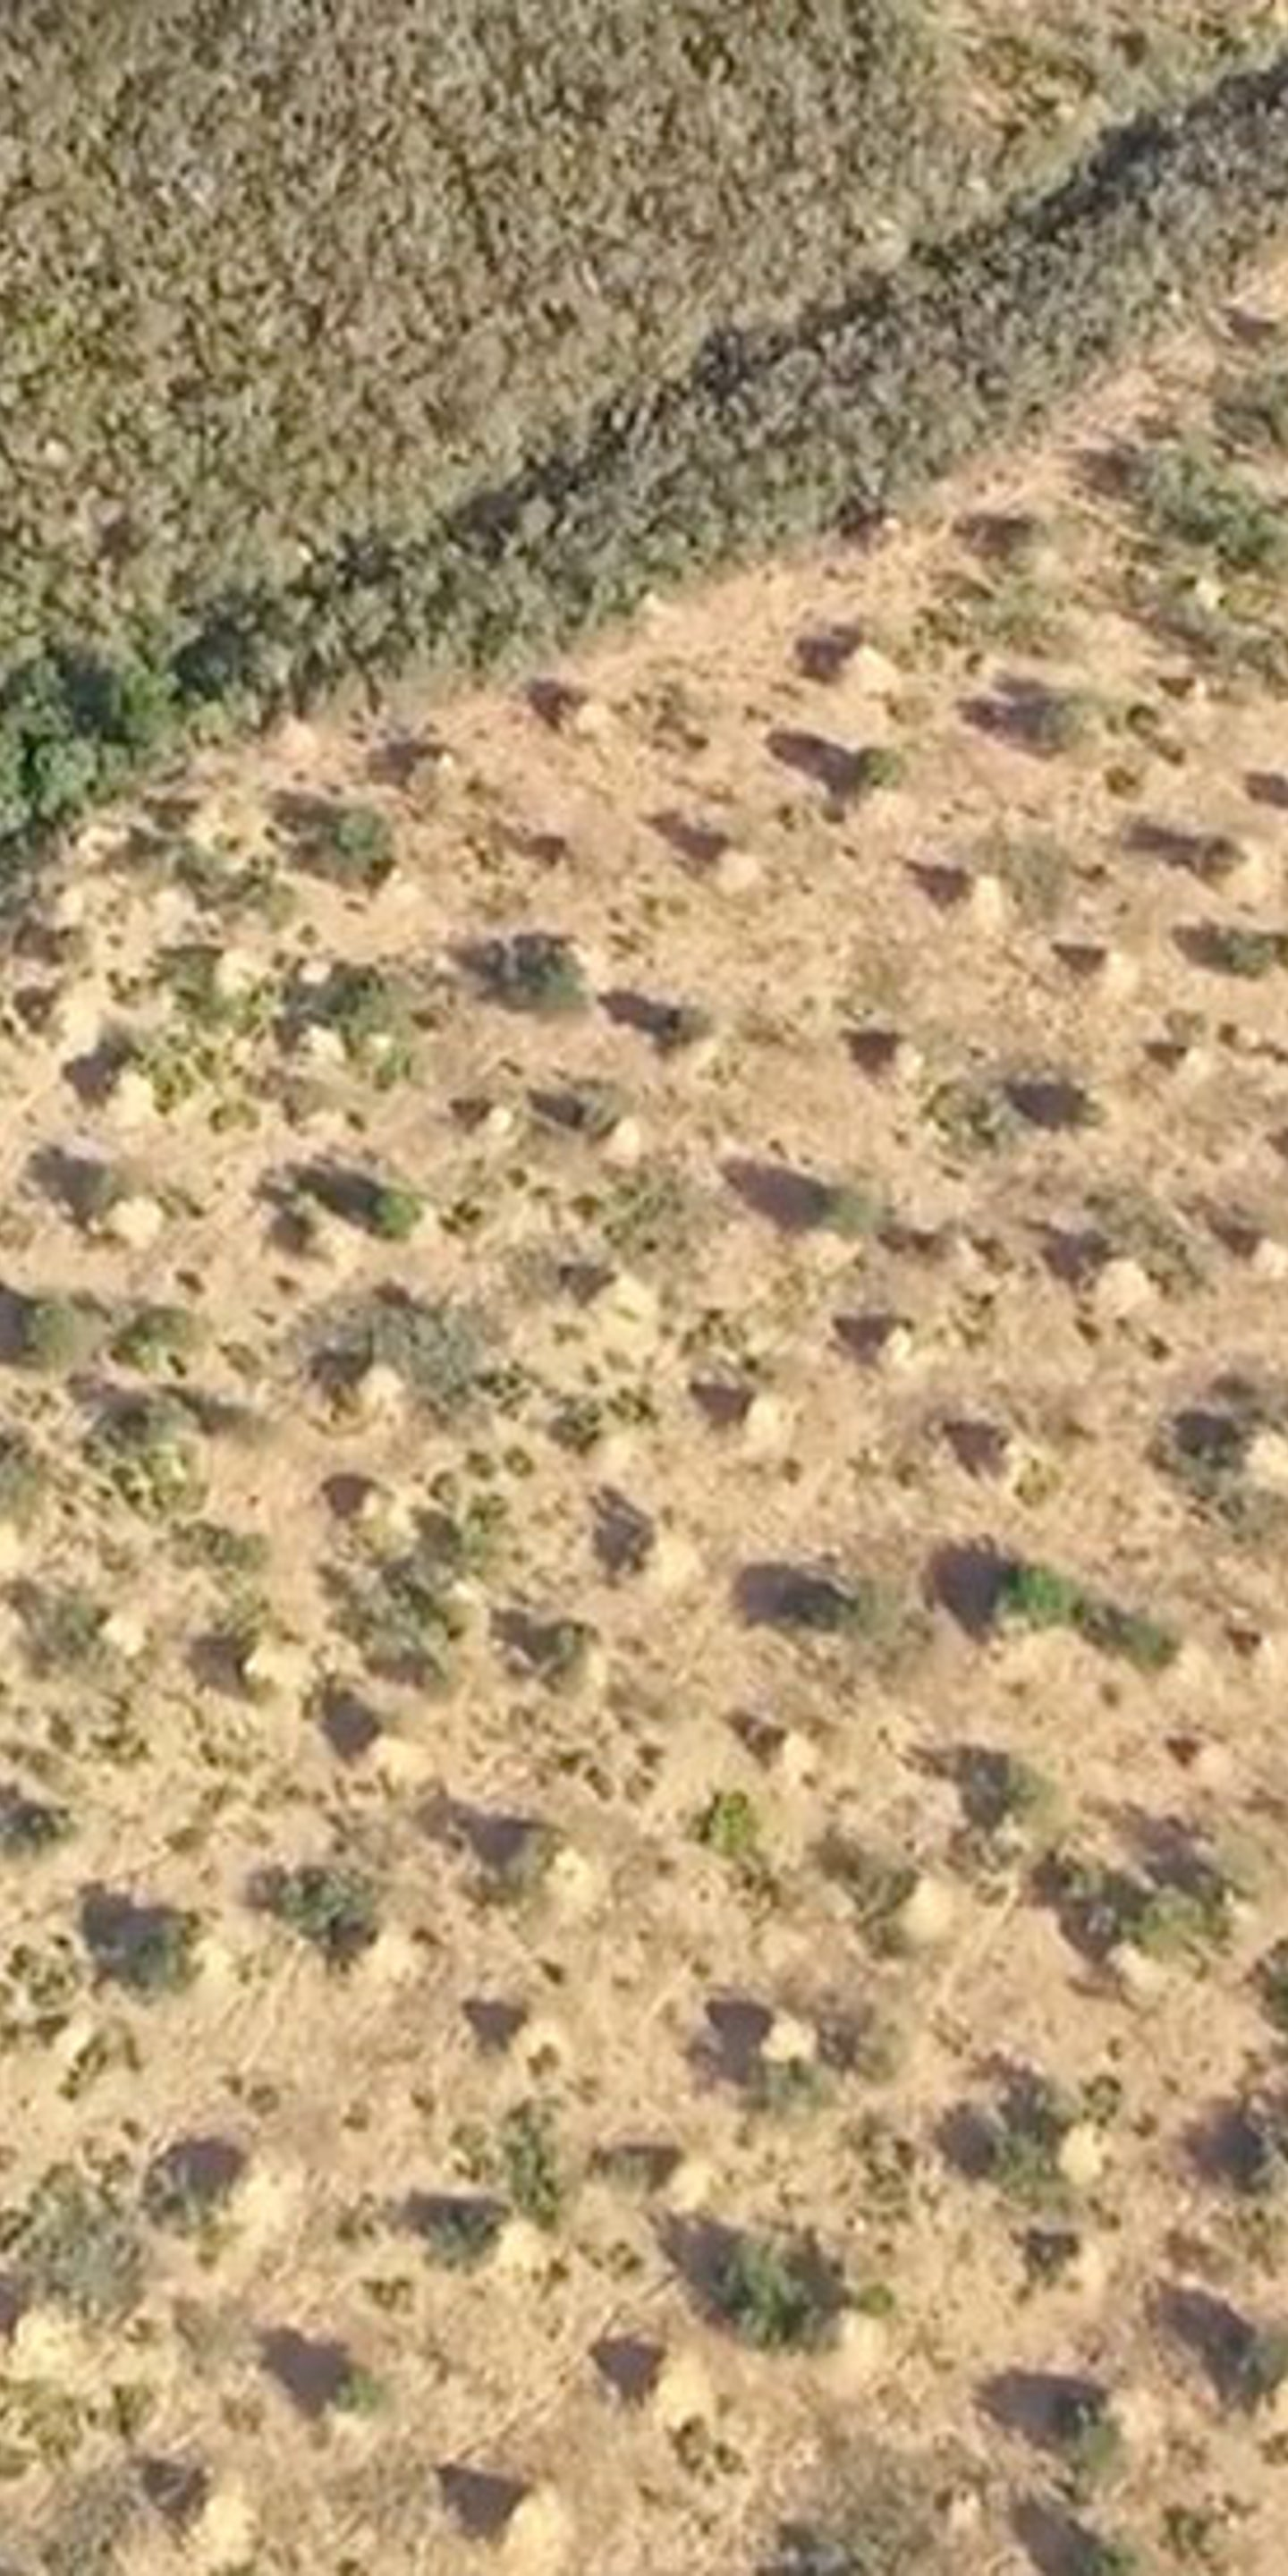 Thousand Year Old Termite Mounds Span An Area The Size Of Great Britain And Can Be Seen From Space The Weather Channel Articles From The Weather Channel Weather Com